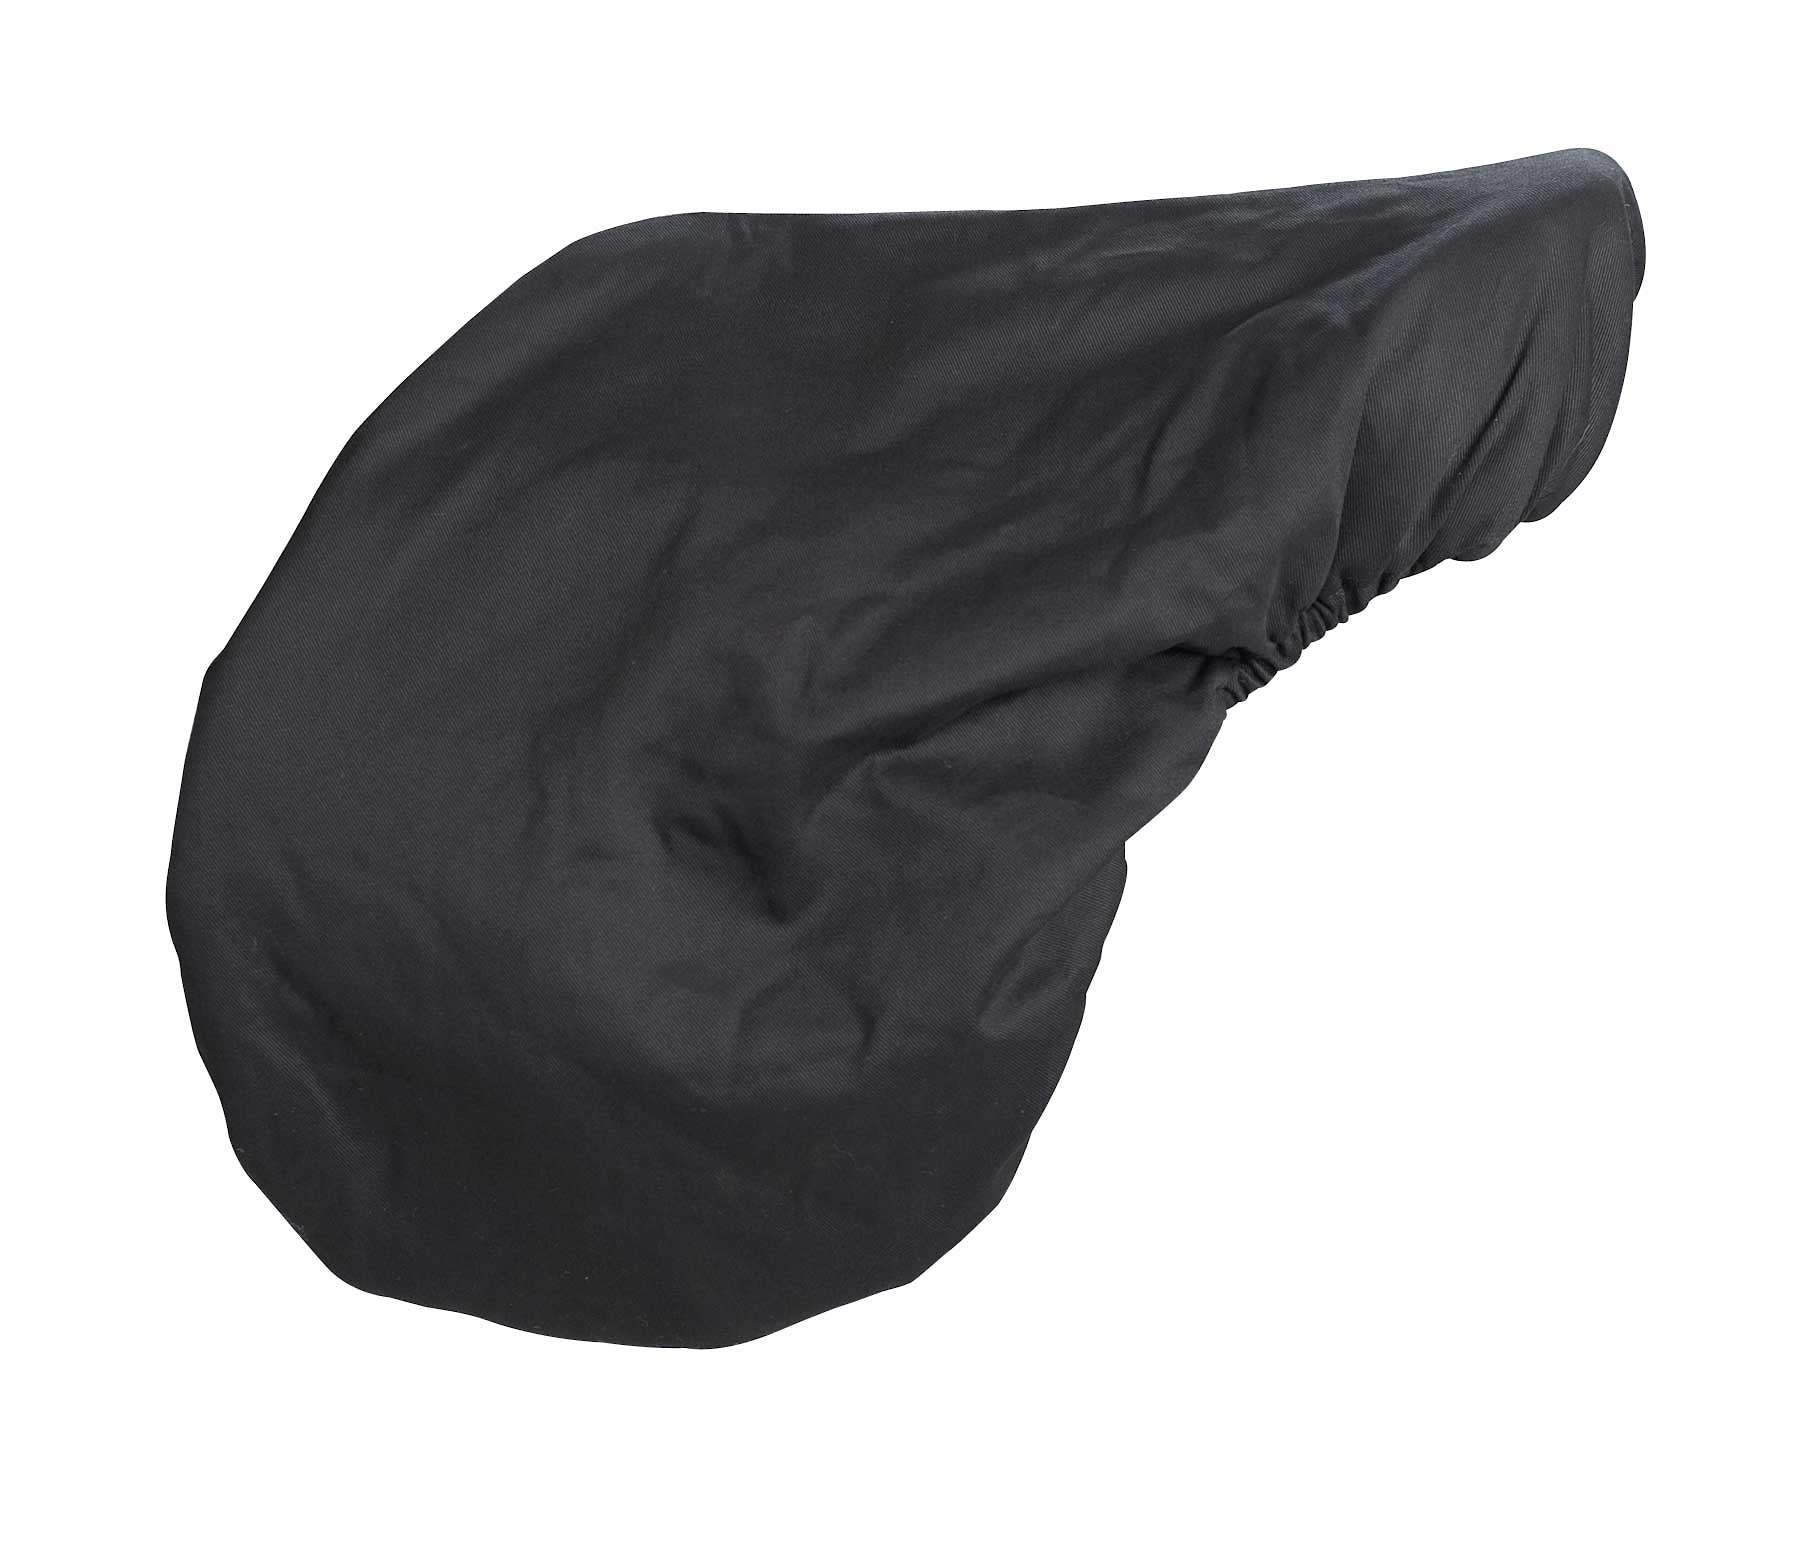 Lettia All Purpose Saddle Cover - Lettia - Breeches.com